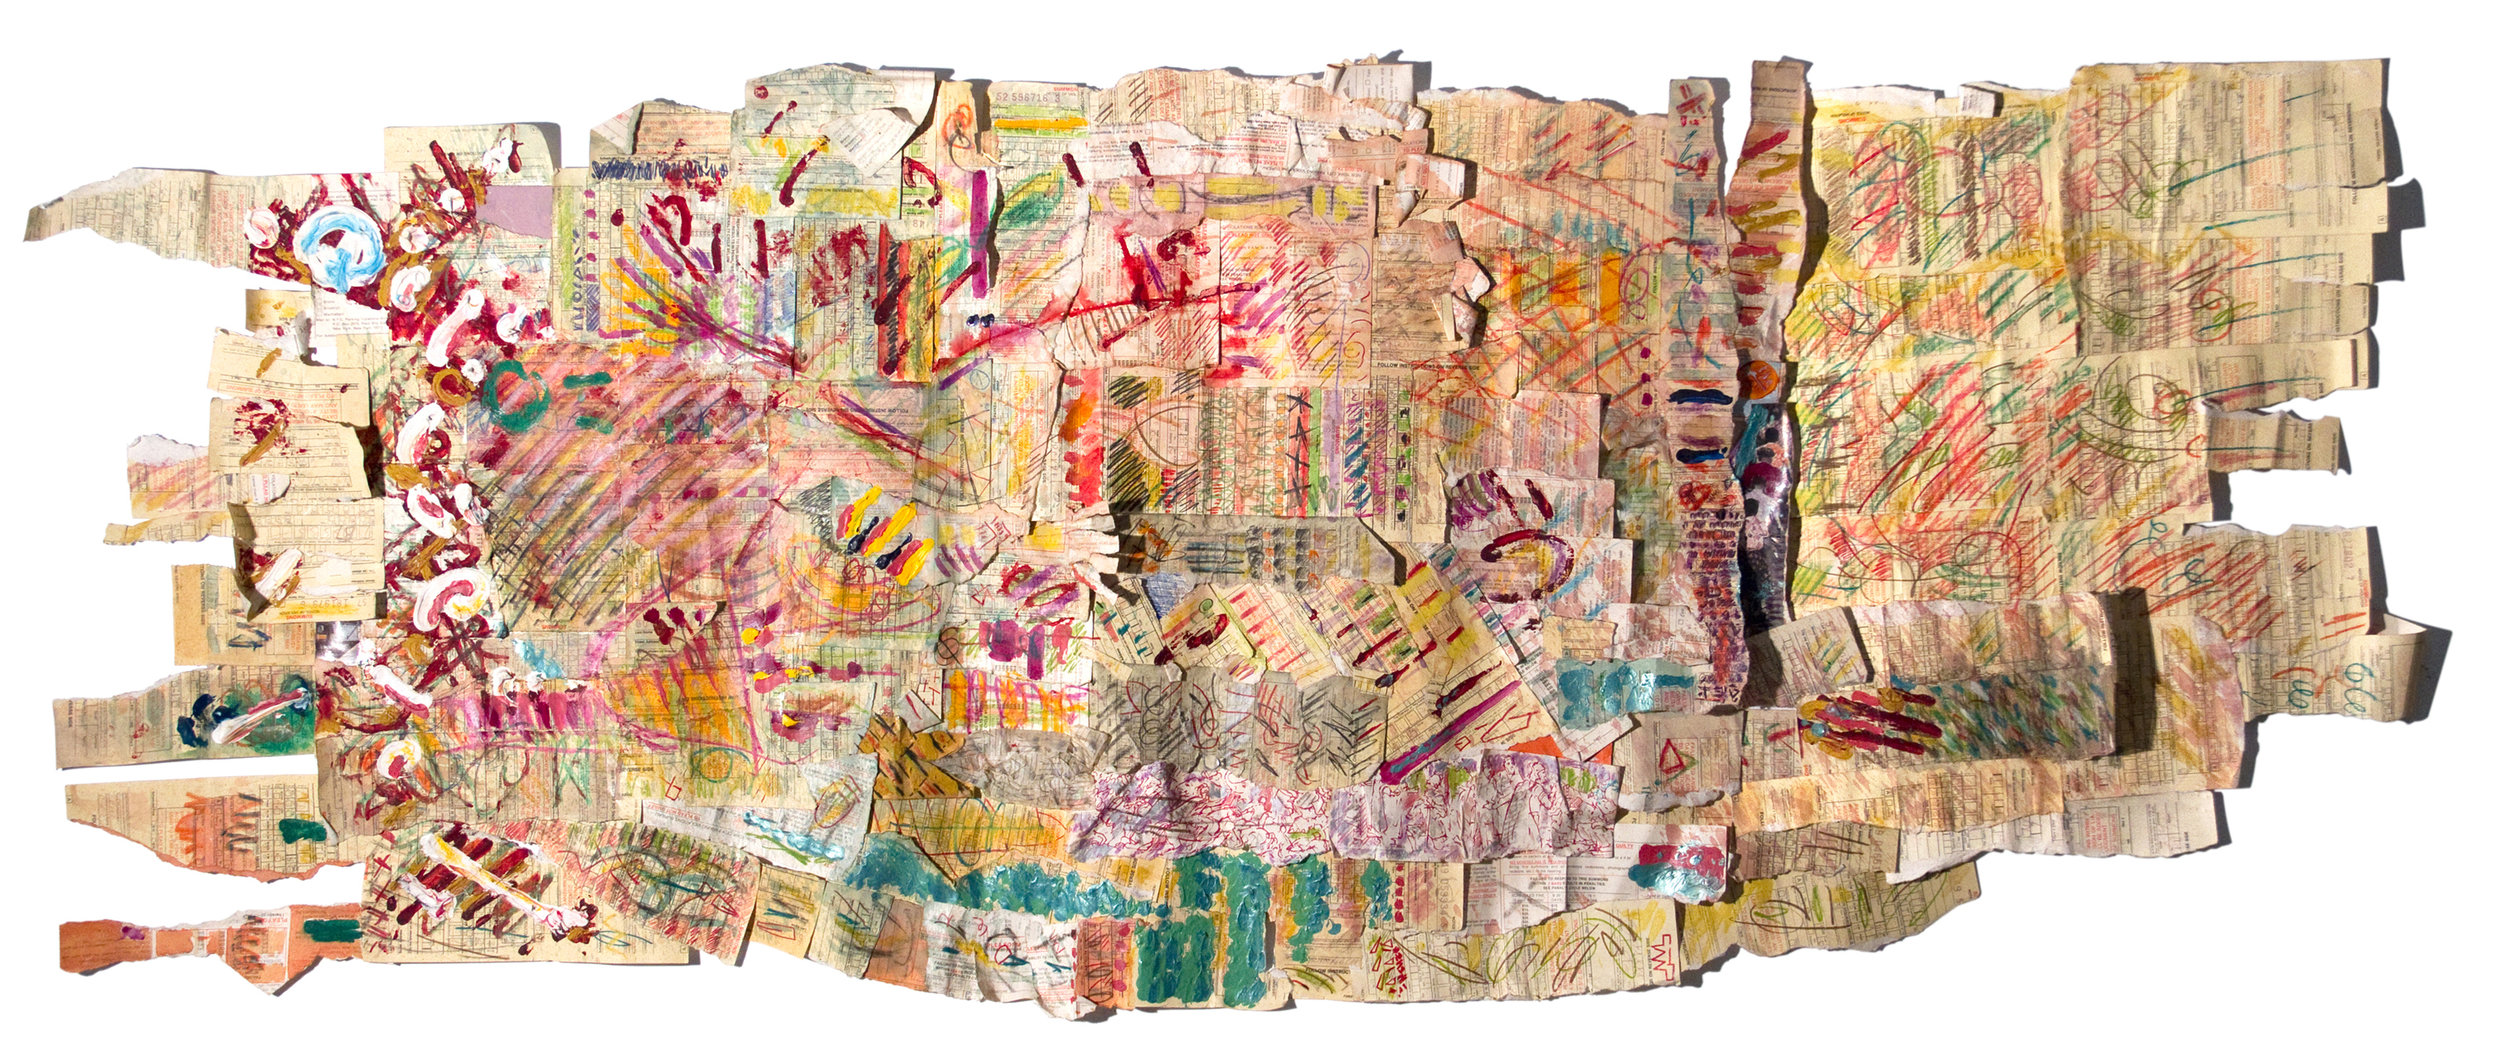 TAKE THE BUS  Mixed Media on NYC Parking Tickets 28 x 55 inches (71 x 140 cm)